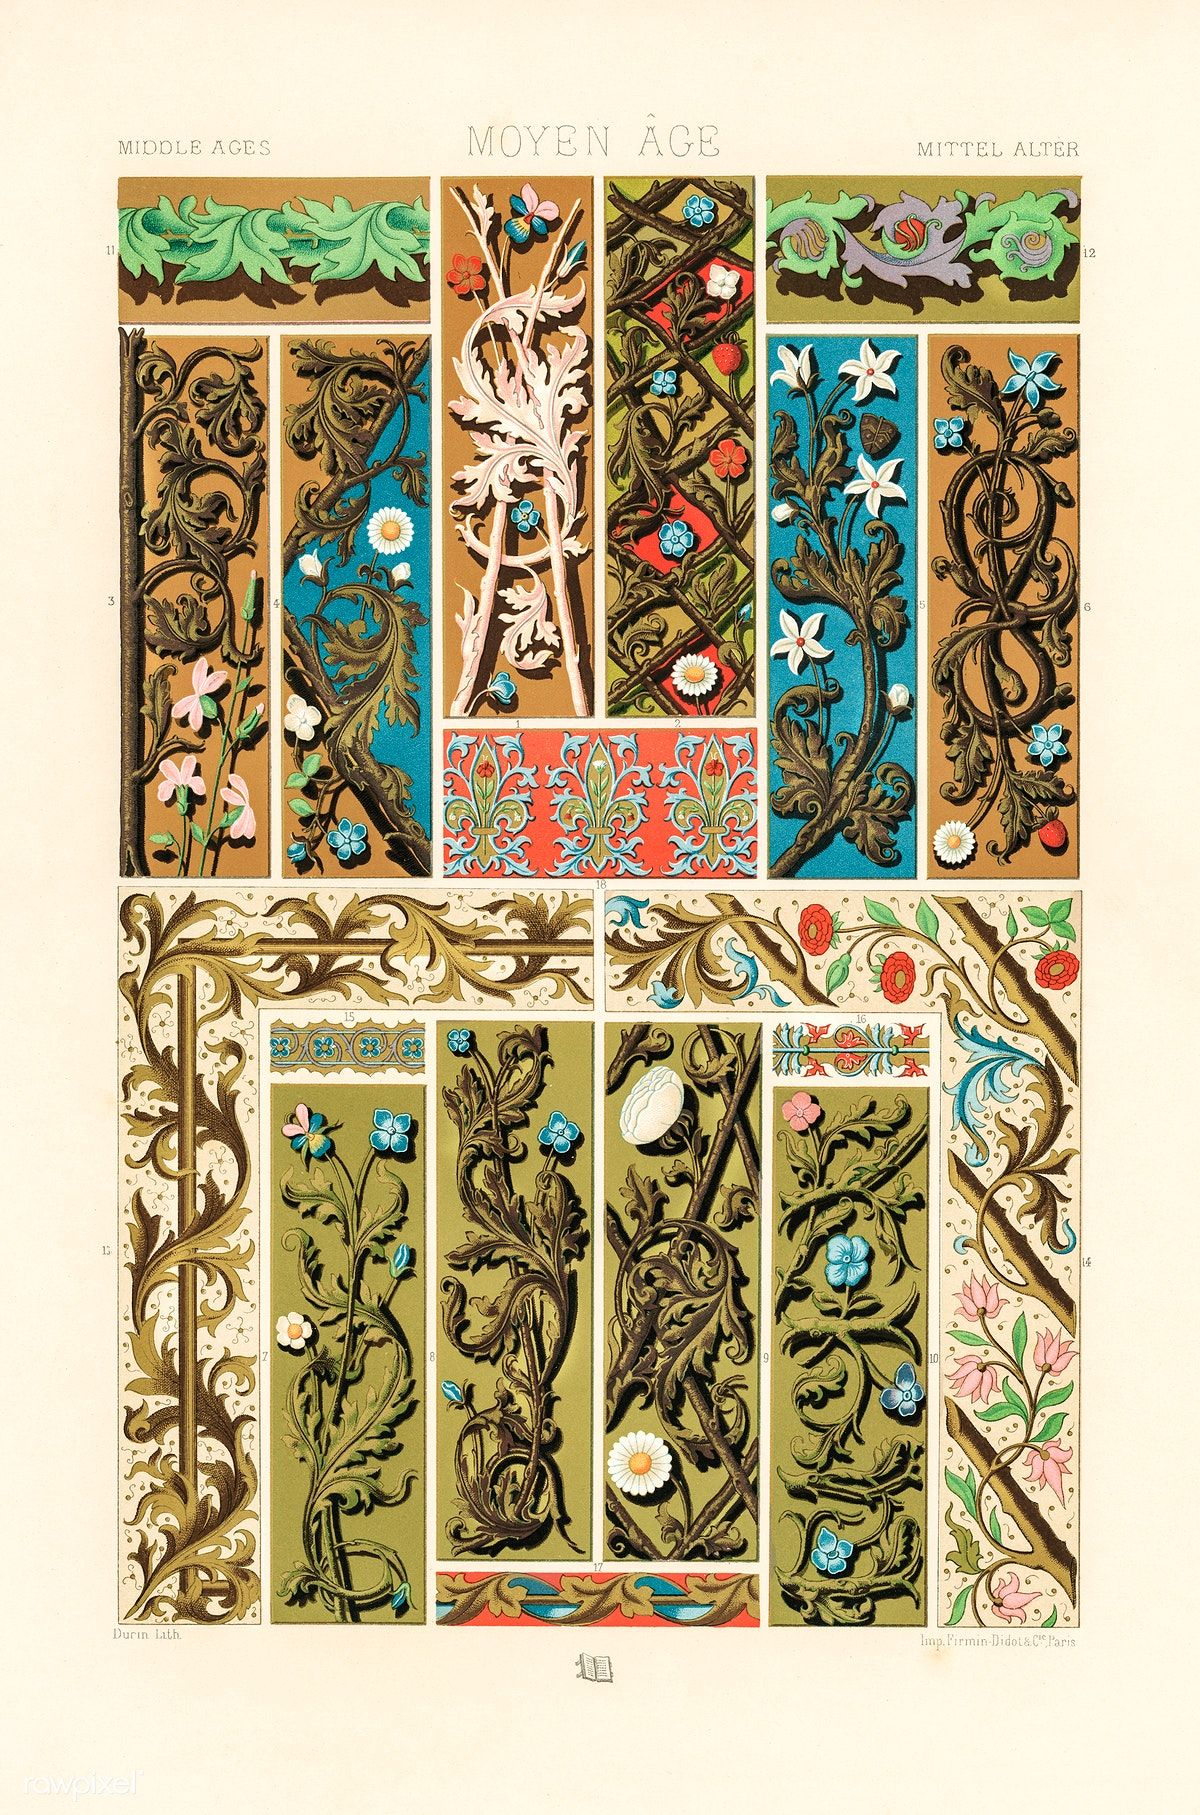 Middle Ages Pattern From L Ornement Polychrome 1888 By Albert Racinet 1825 1893 Digitally Enh Decorative Prints Decorative Art Prints Persian Art Painting